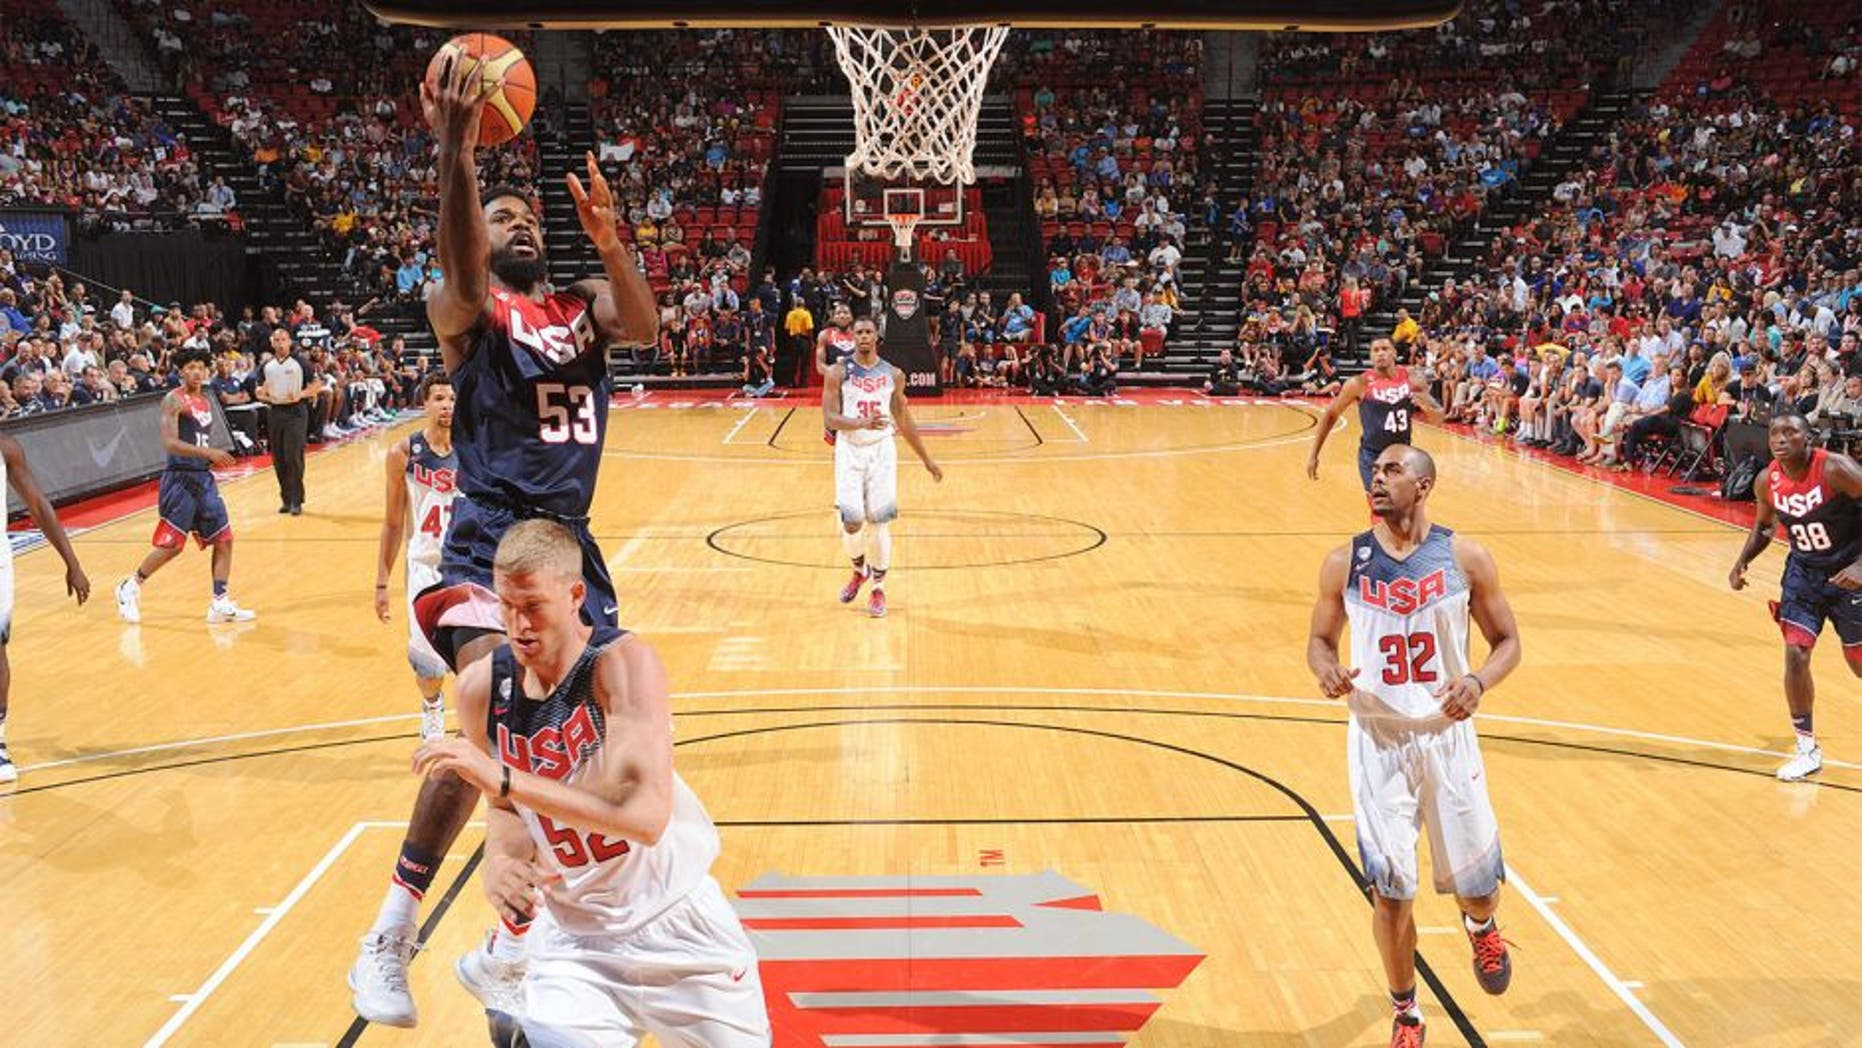 LAS VEGAS, NV - AUGUST 13: Amir Johnson #53 of the USA Blue Team goes up for a shot against the USA White Team during Team USA Basketball Showcase on August 13, 2015 at the Thomas & Mack Center in Las Vegas, Nevada. NOTE TO USER: User expressly acknowledges and agrees that, by downloading and/or using this Photograph, user is consenting to the terms and conditions of the Getty Images License Agreement. Mandatory Copyright Notice: Copyright 2015 NBAE (Photo by Garrett Ellwood/NBAE via Getty Images)